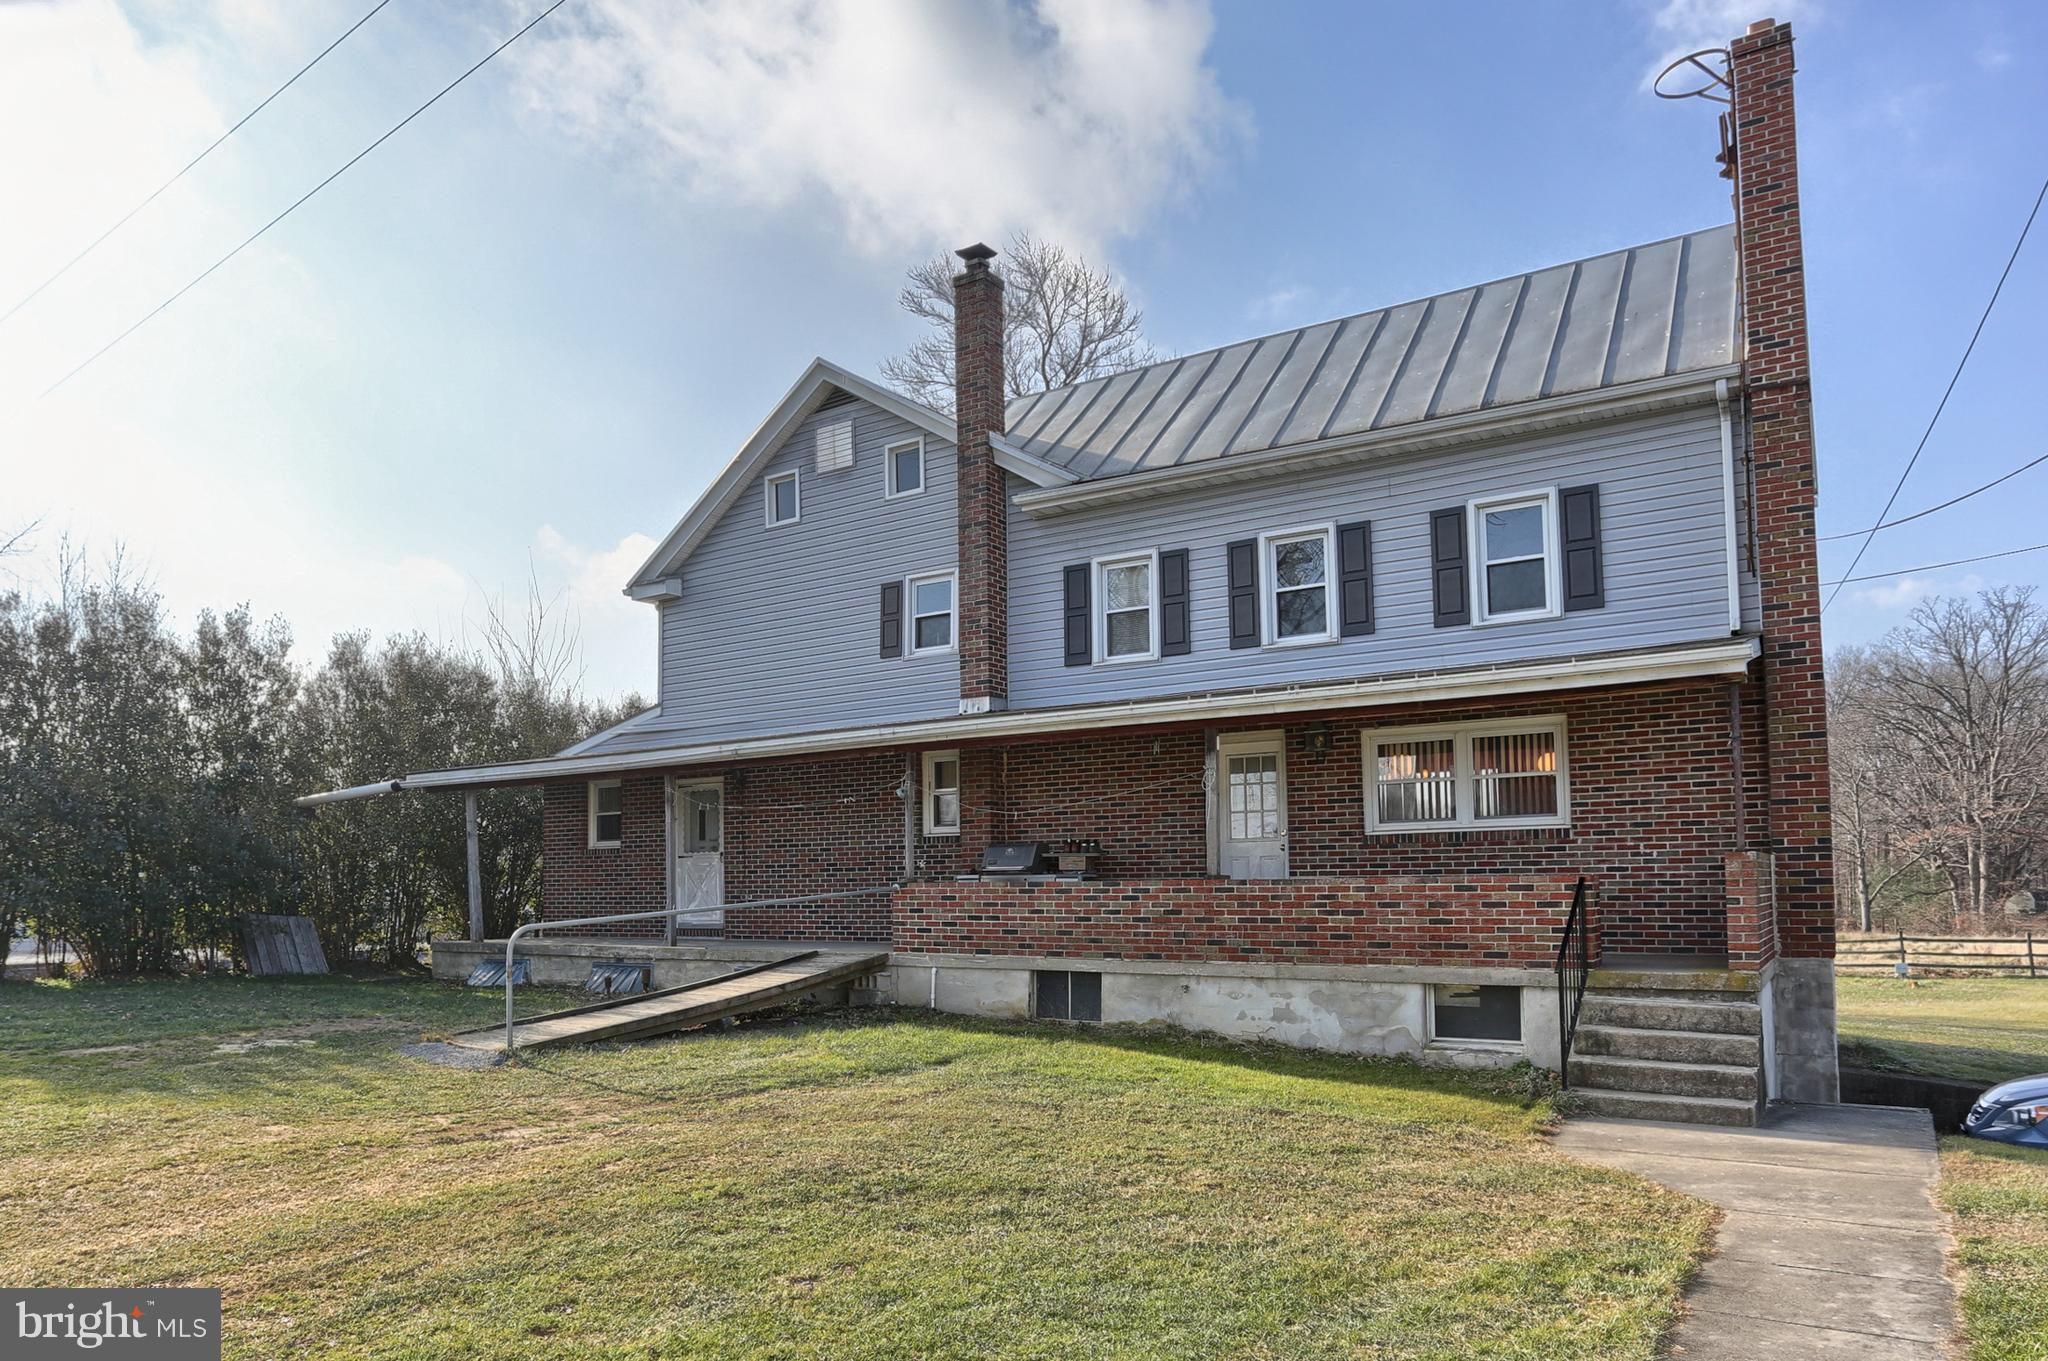 188 SCHUBERT ROAD, BETHEL, PA 19507